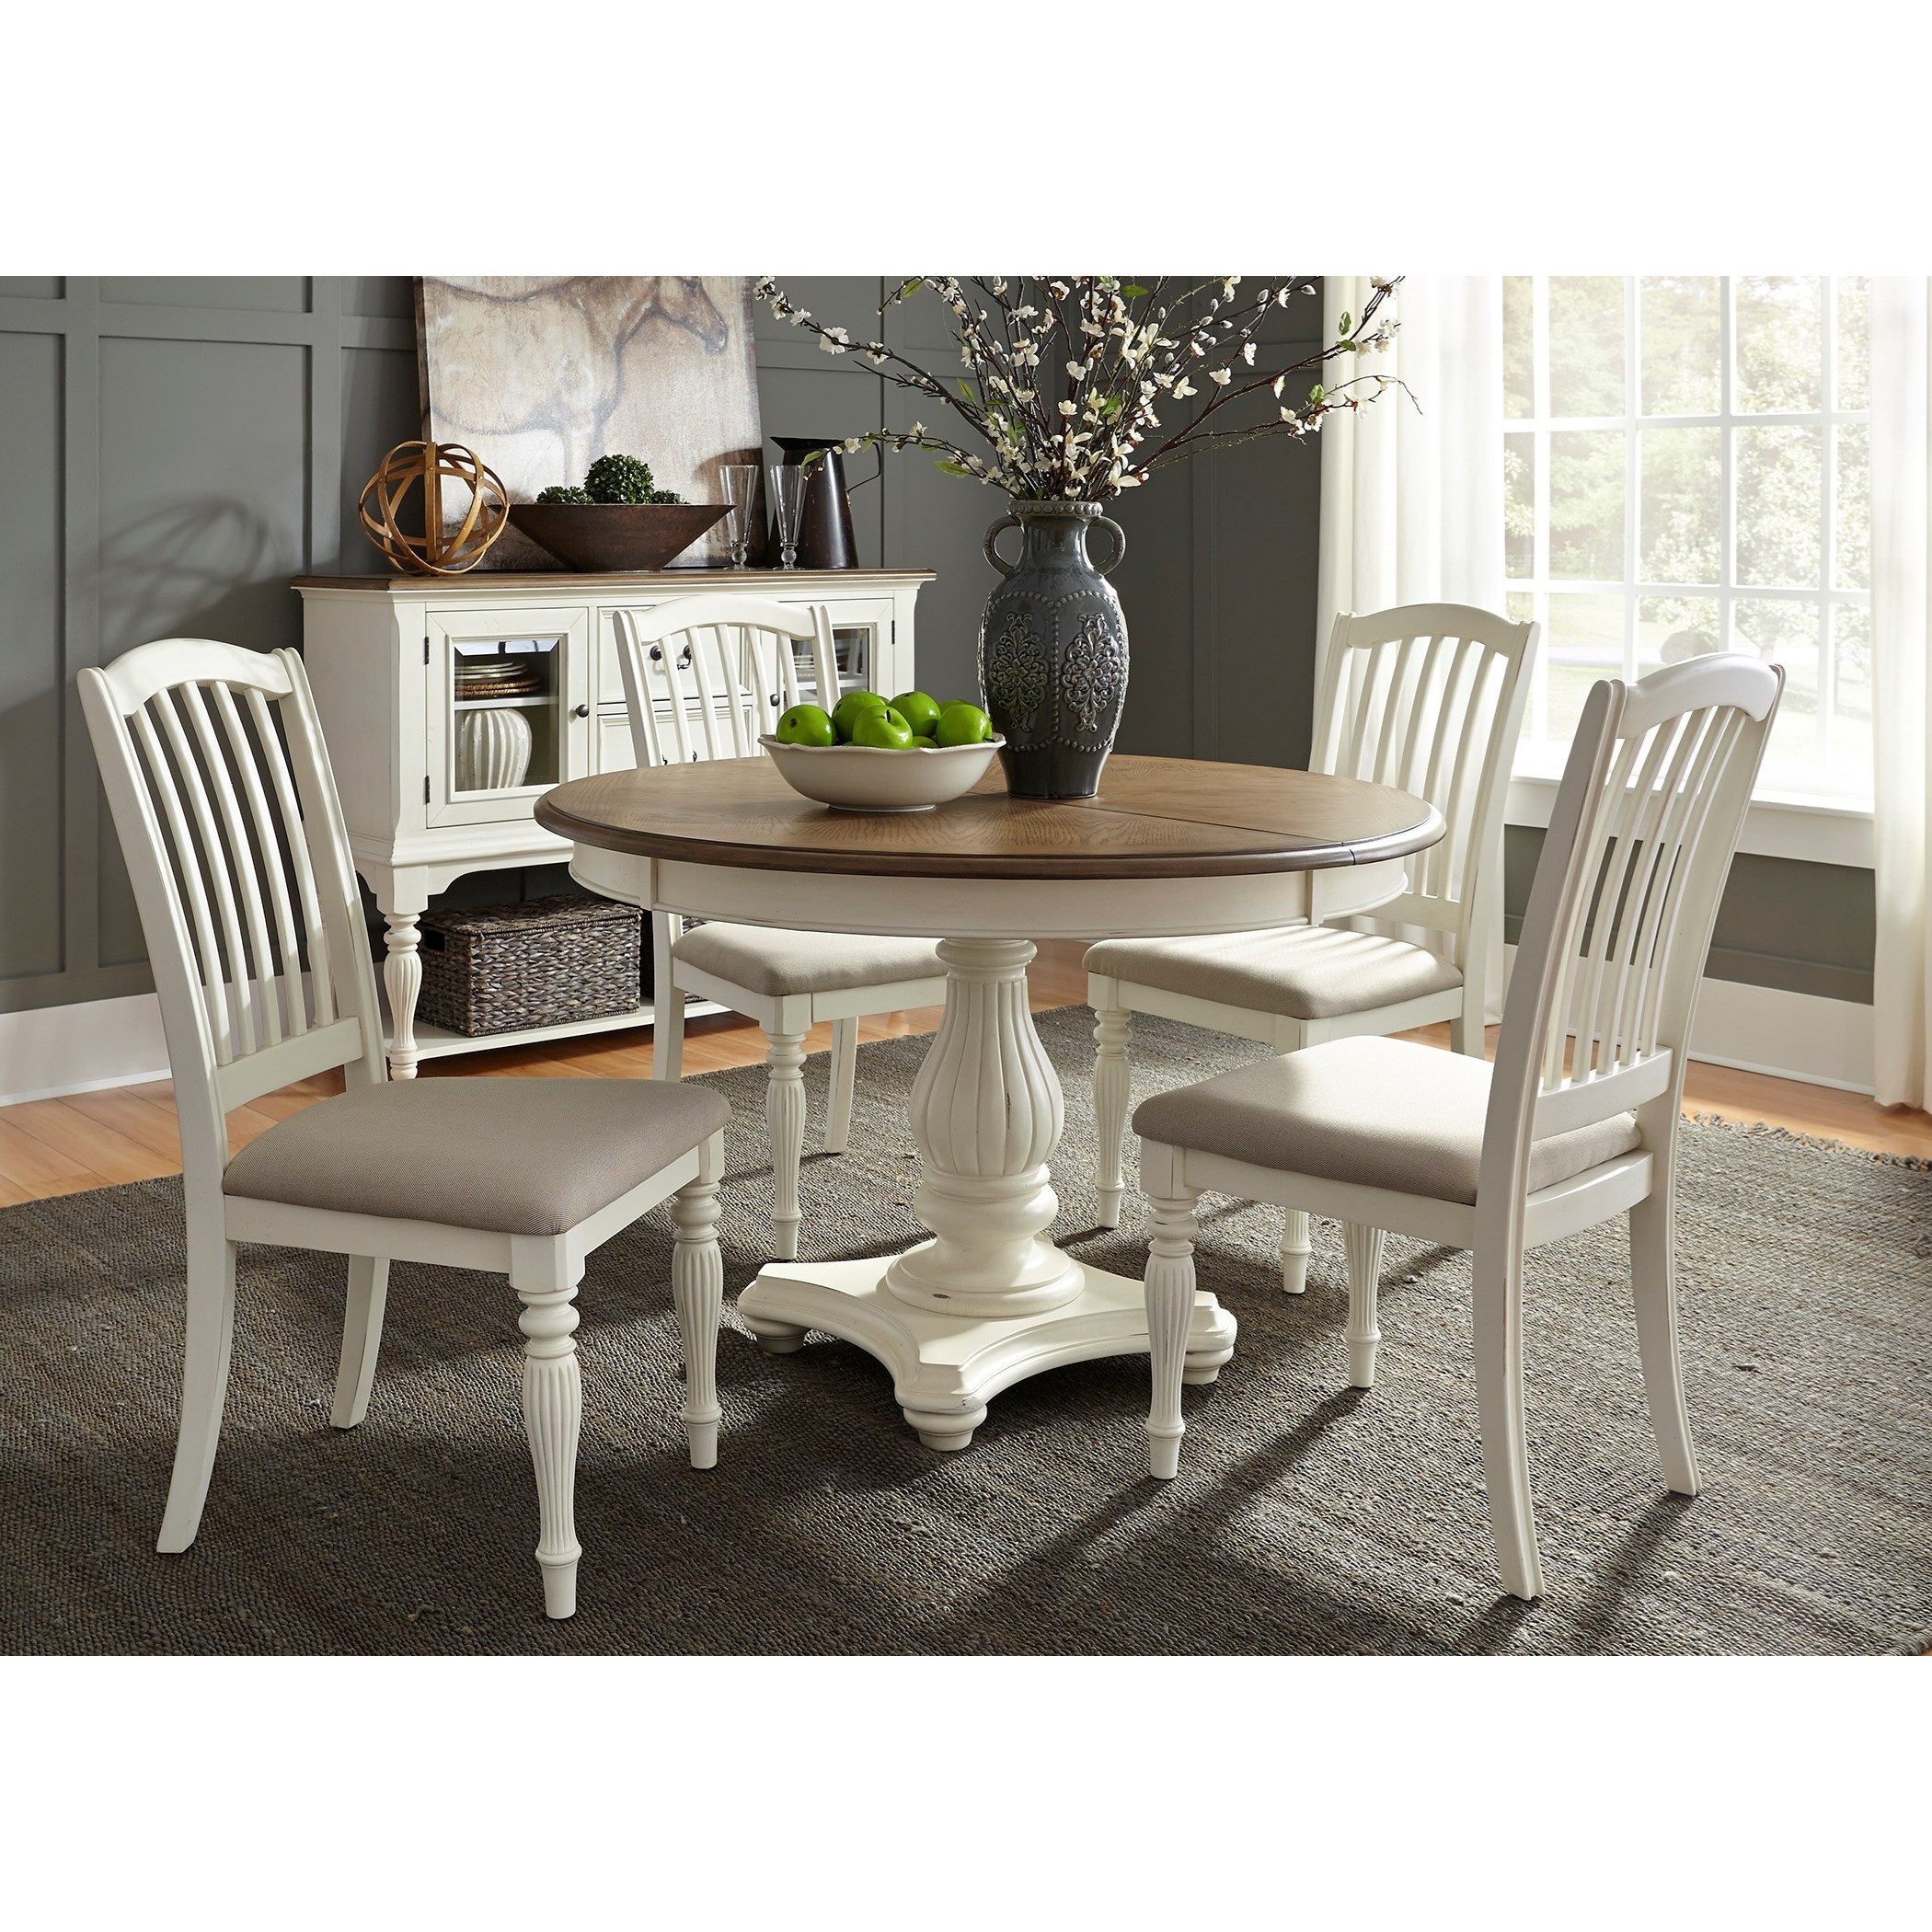 Cumberland Creek Dining 5 Piece Pedestal Table Set  by Liberty Furniture at Northeast Factory Direct